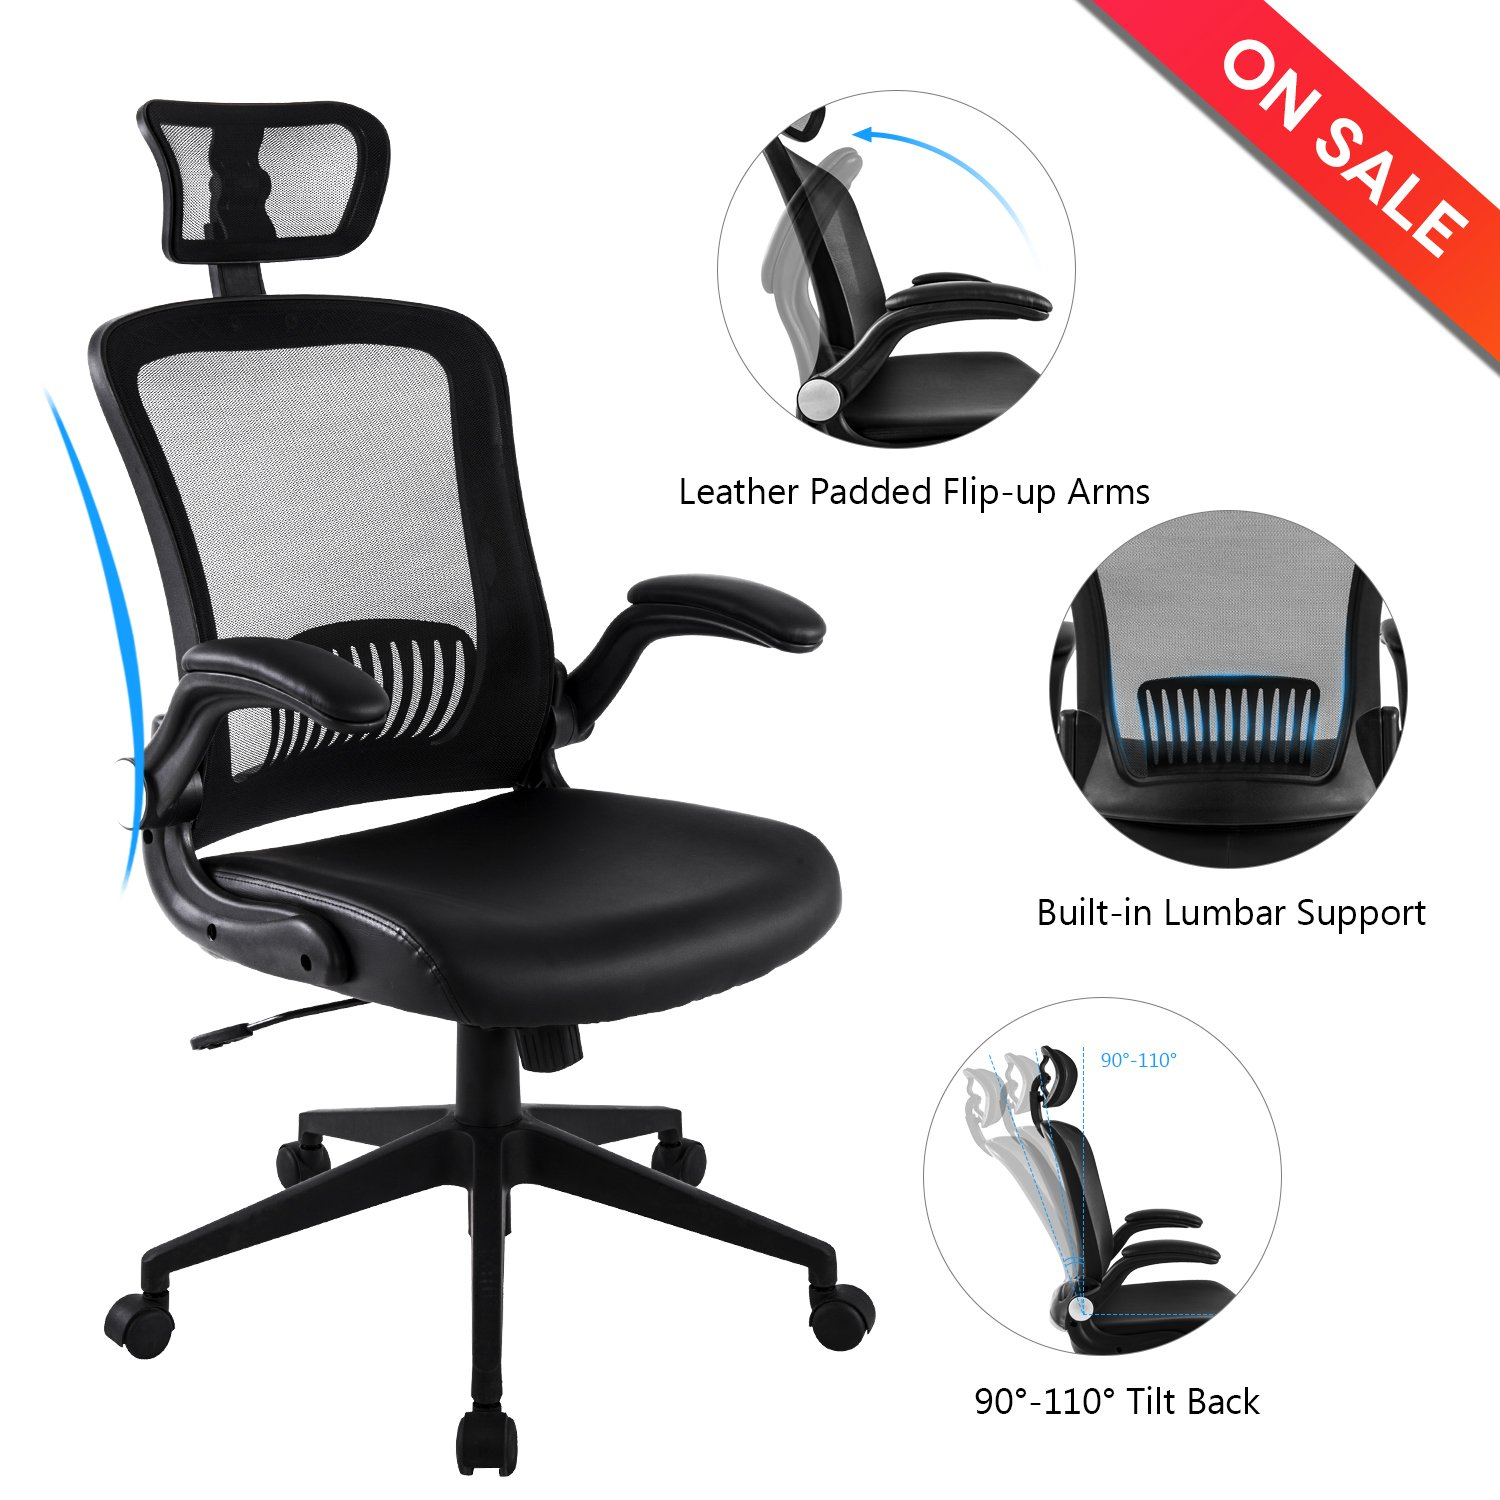 lch ergonomic high back mesh office chair with bonded leather seat